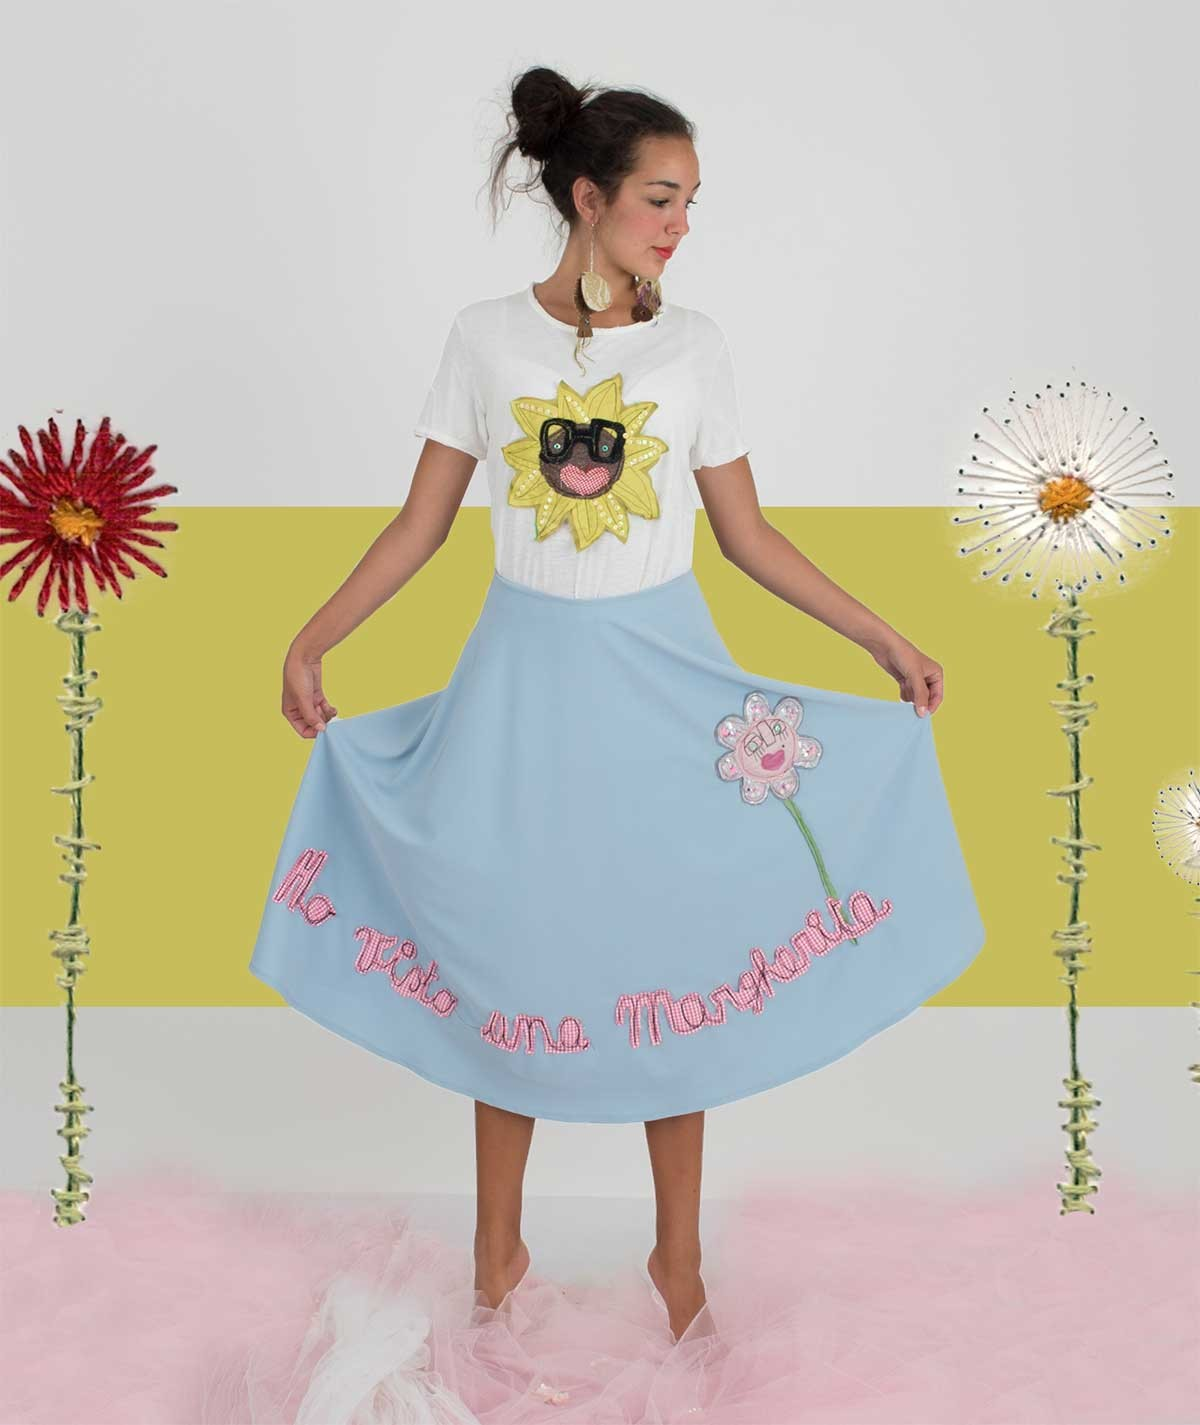 The Daisy Skirt